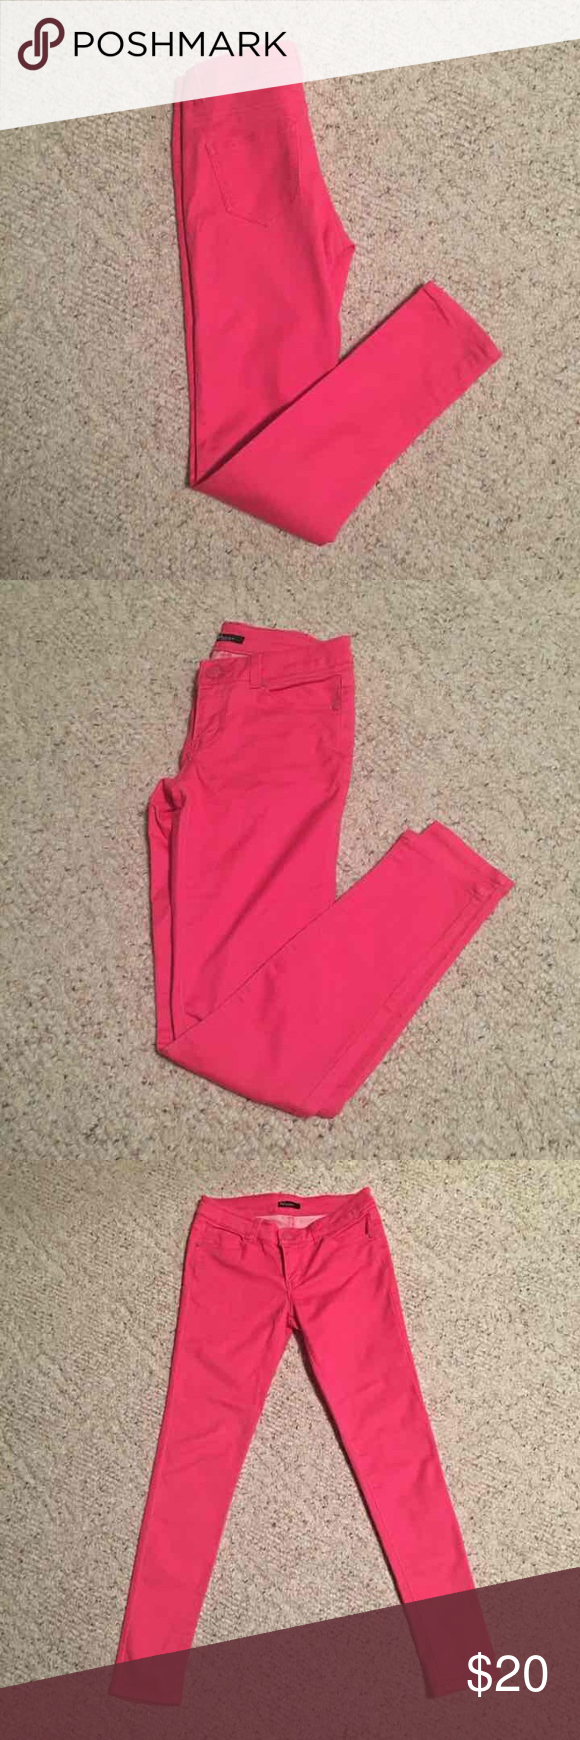 Selling this Hot Pink Skinny Jeans size 1 on Poshmark! My username is: ckhoffma. #shopmycloset #poshmark #fashion #shopping #style #forsale #Reve Jeans #Pants